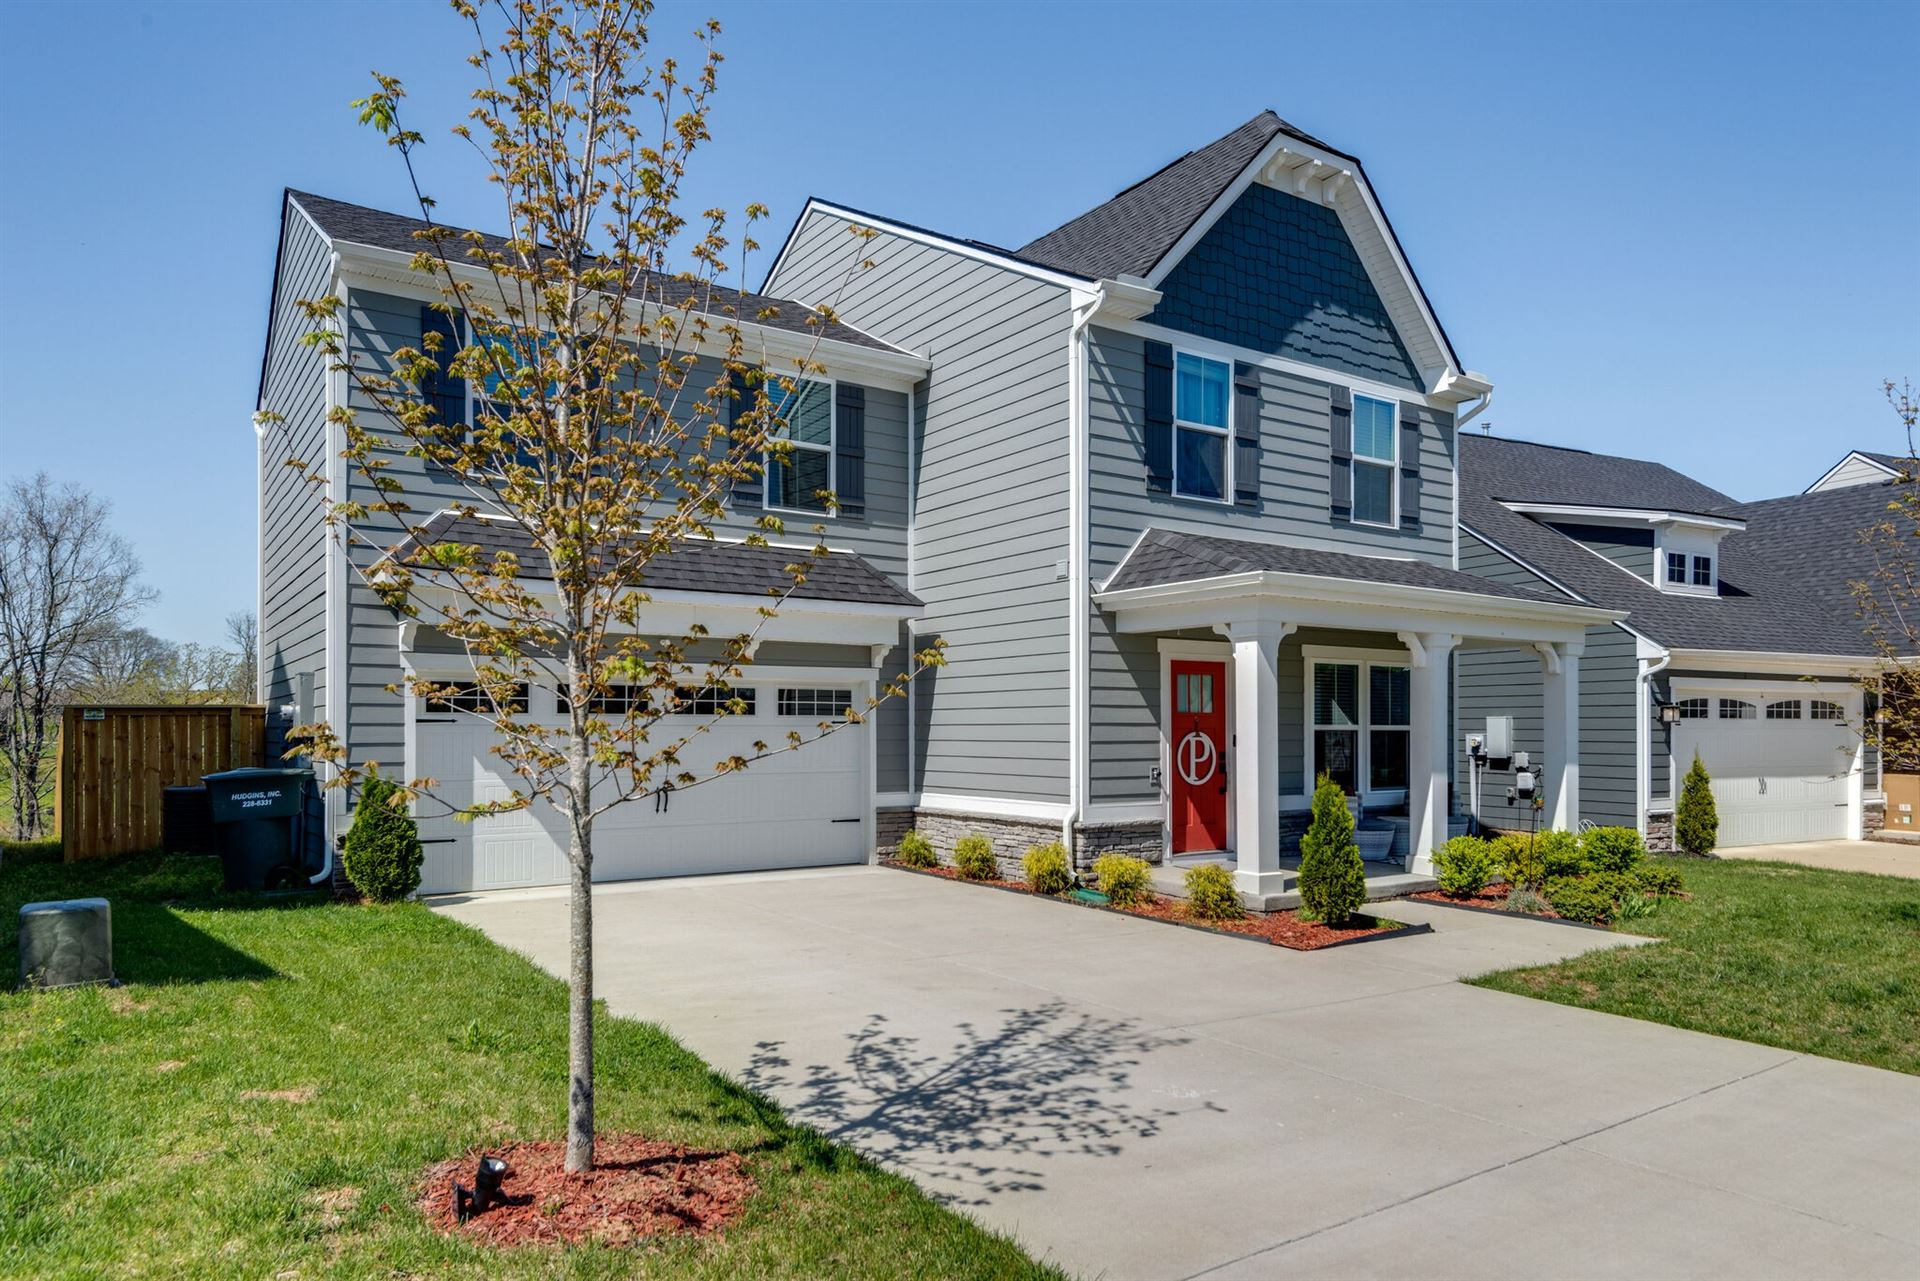 Photo of 9448 Kaplan Ave, Brentwood, TN 37027 (MLS # 2244602)